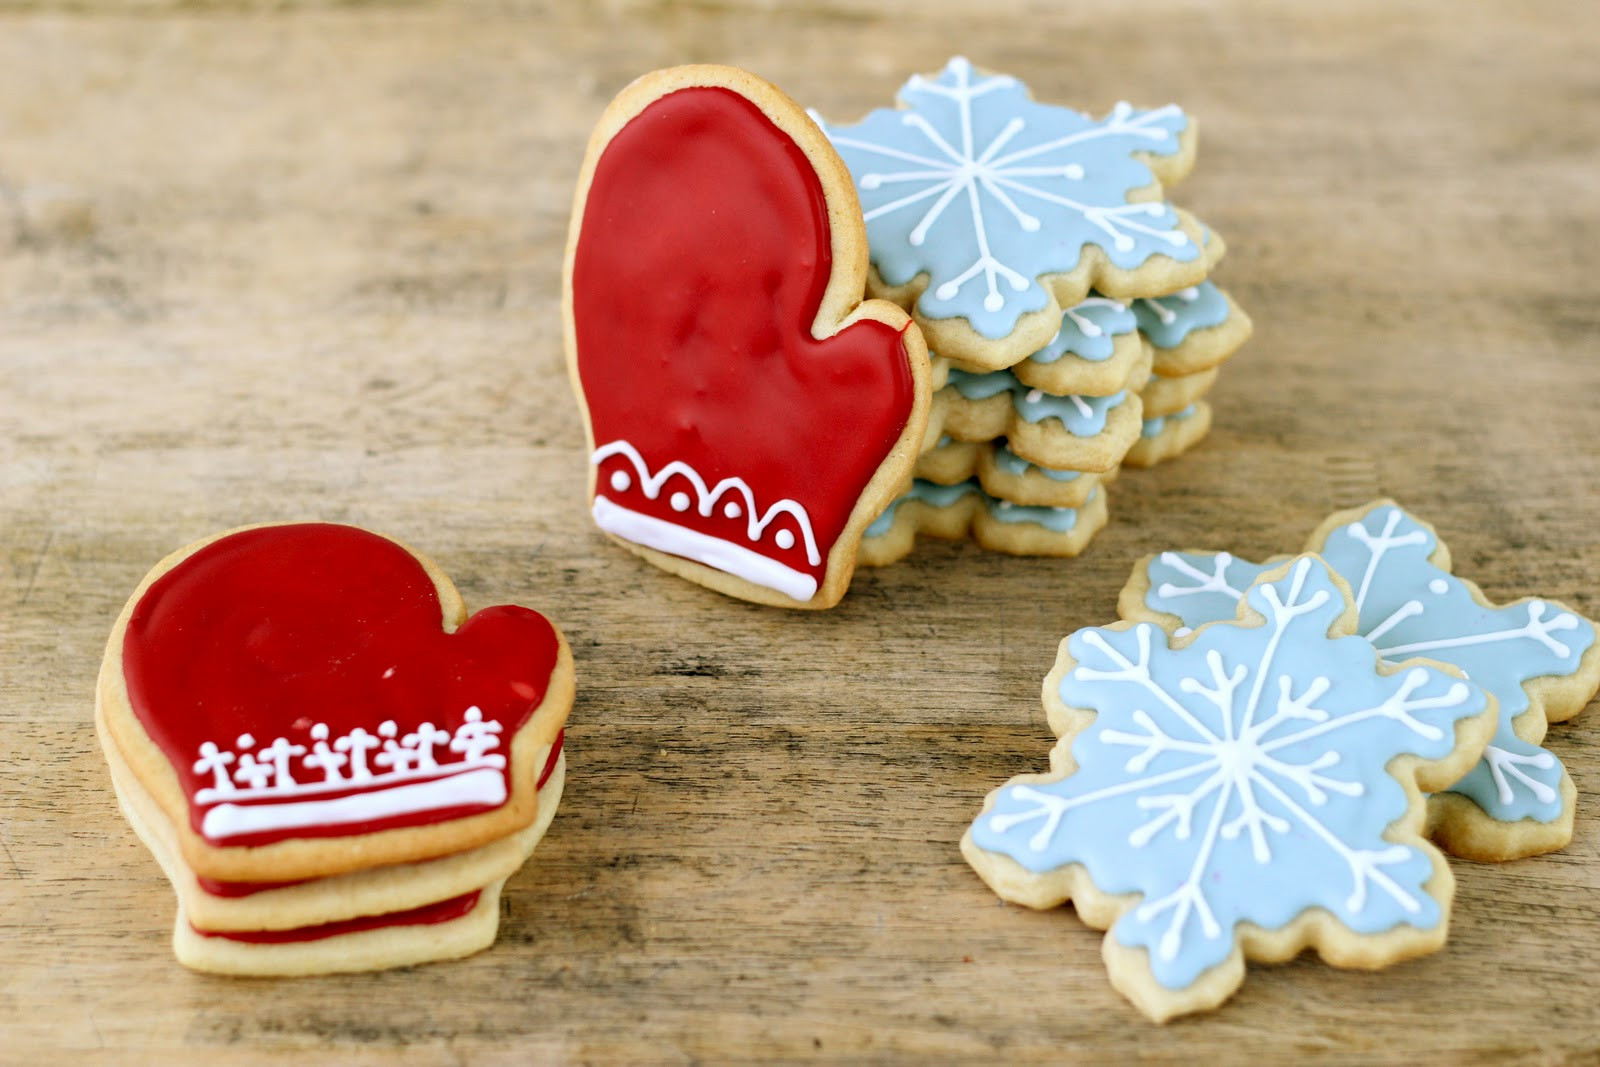 Christmas Sugar Cookie Icing Recipes  Jenny Steffens Hobick Christmas Cookies